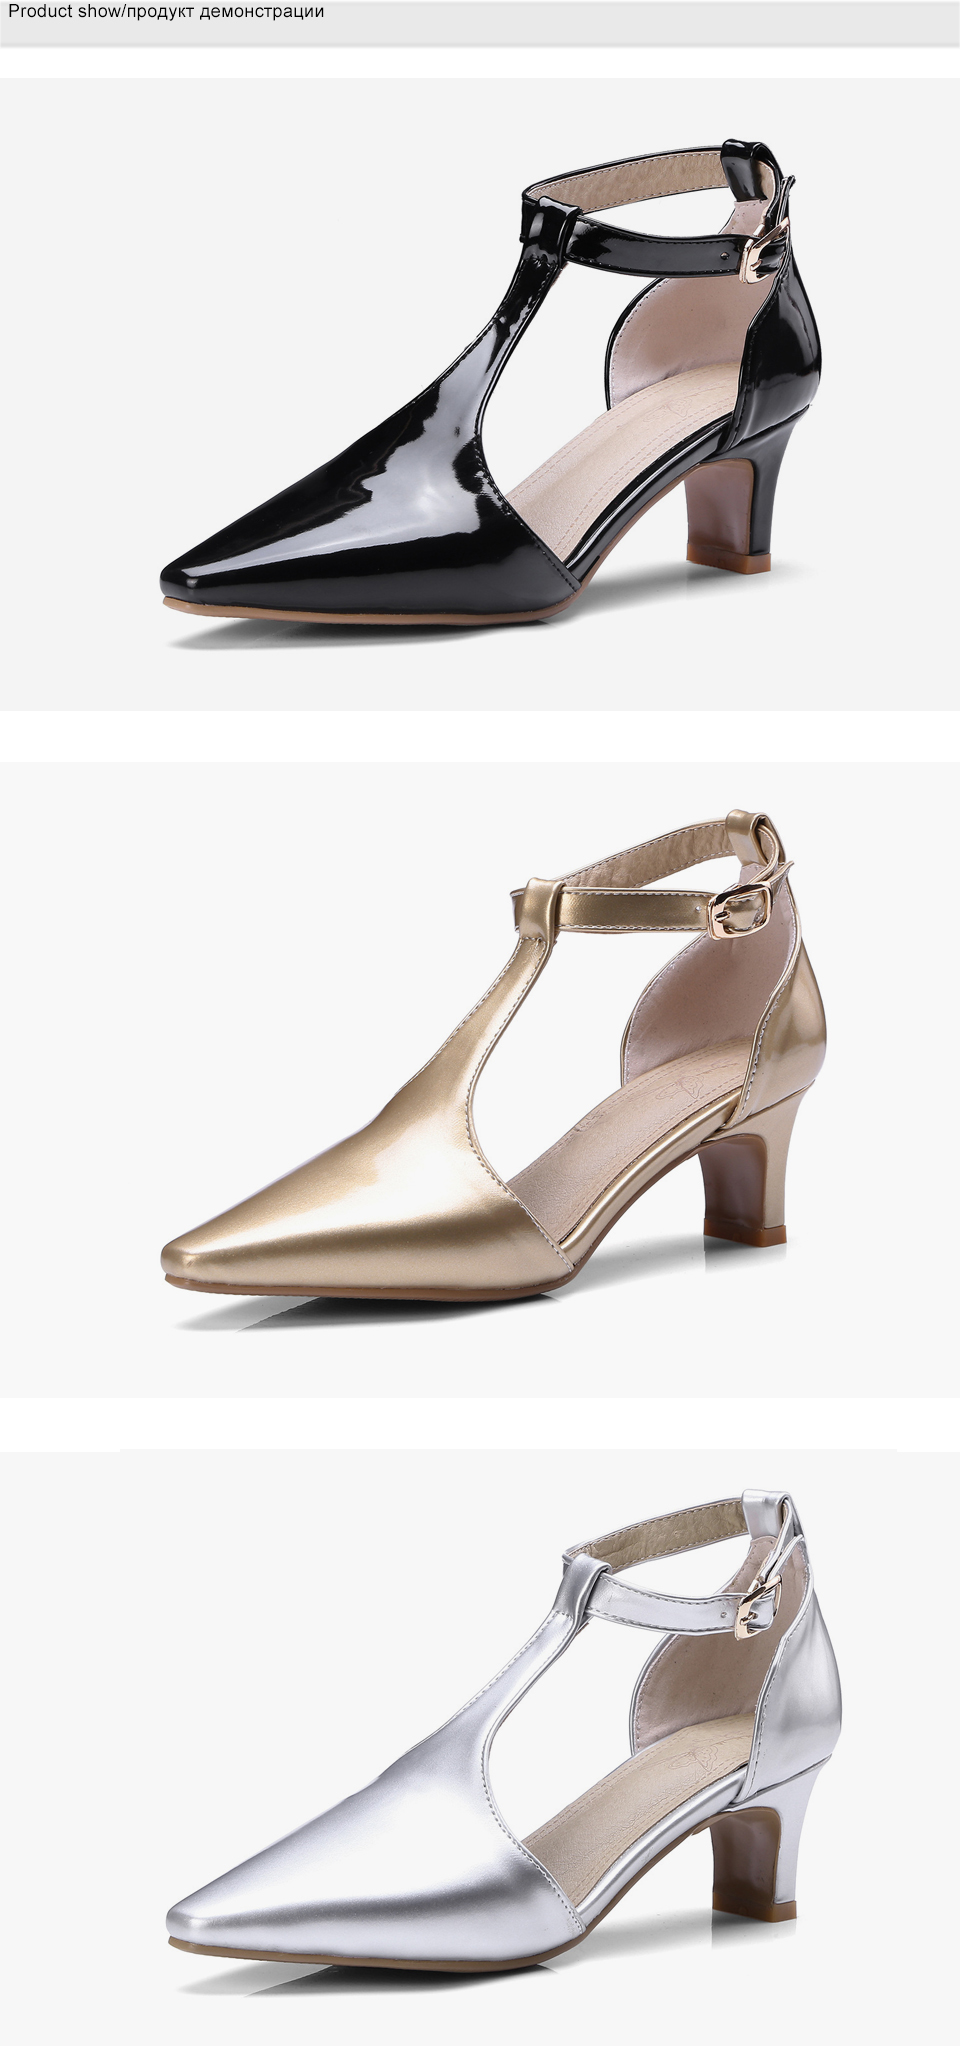 Shoes Woman High Heels Mary Jane Pointed Toe Women Pumps Brand Ankle Strap Summer Shoes Thin Heel Black Plus Size New Arrvial DE 3